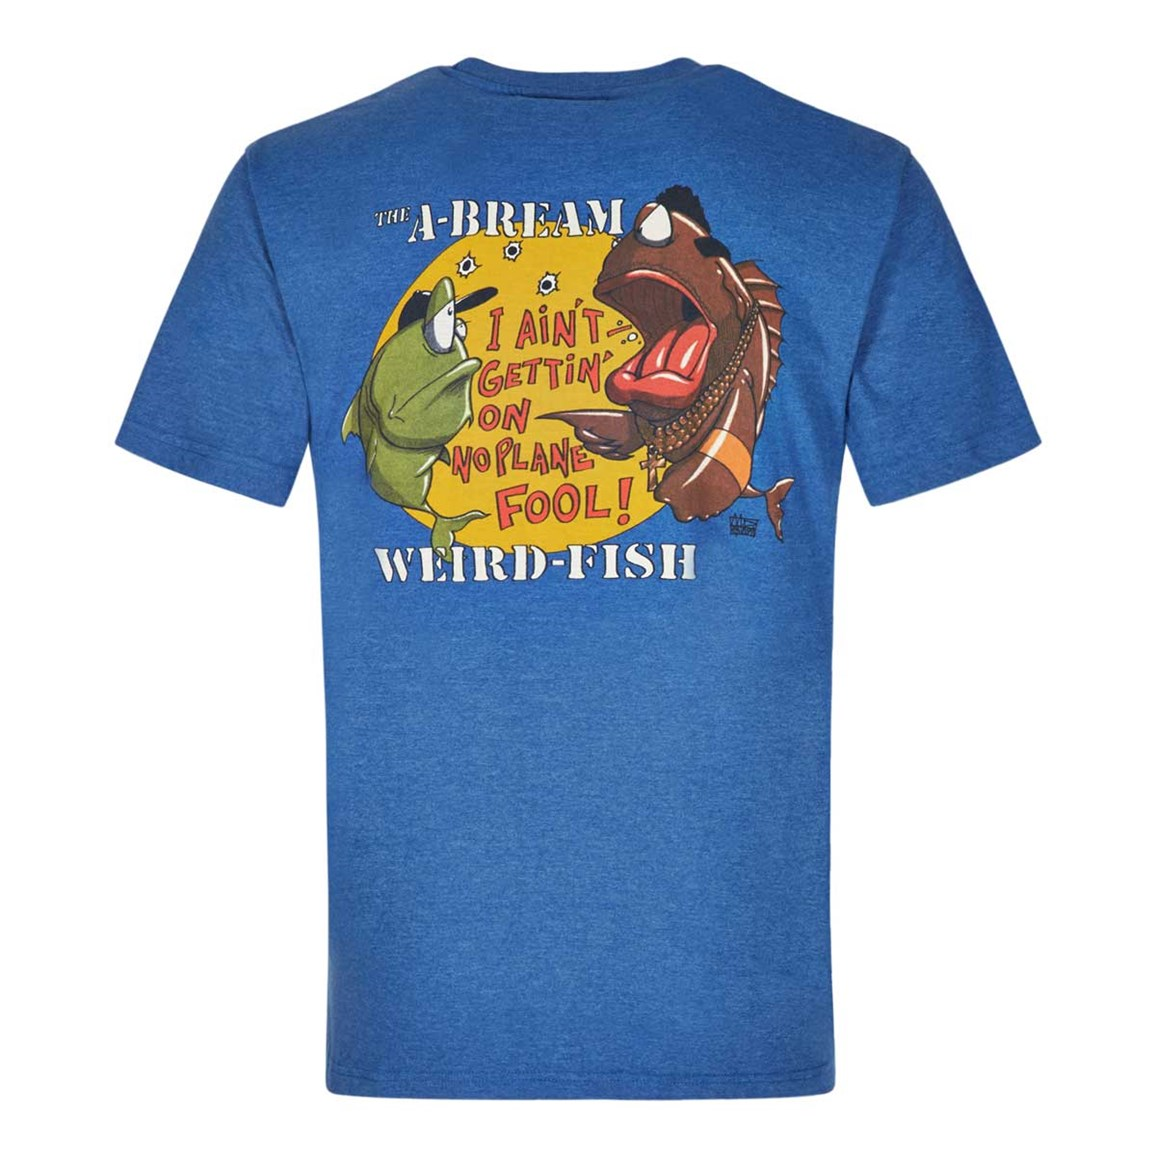 Weird Fish A-Bream Printed Artist T-Shirt Dark Blue Marl